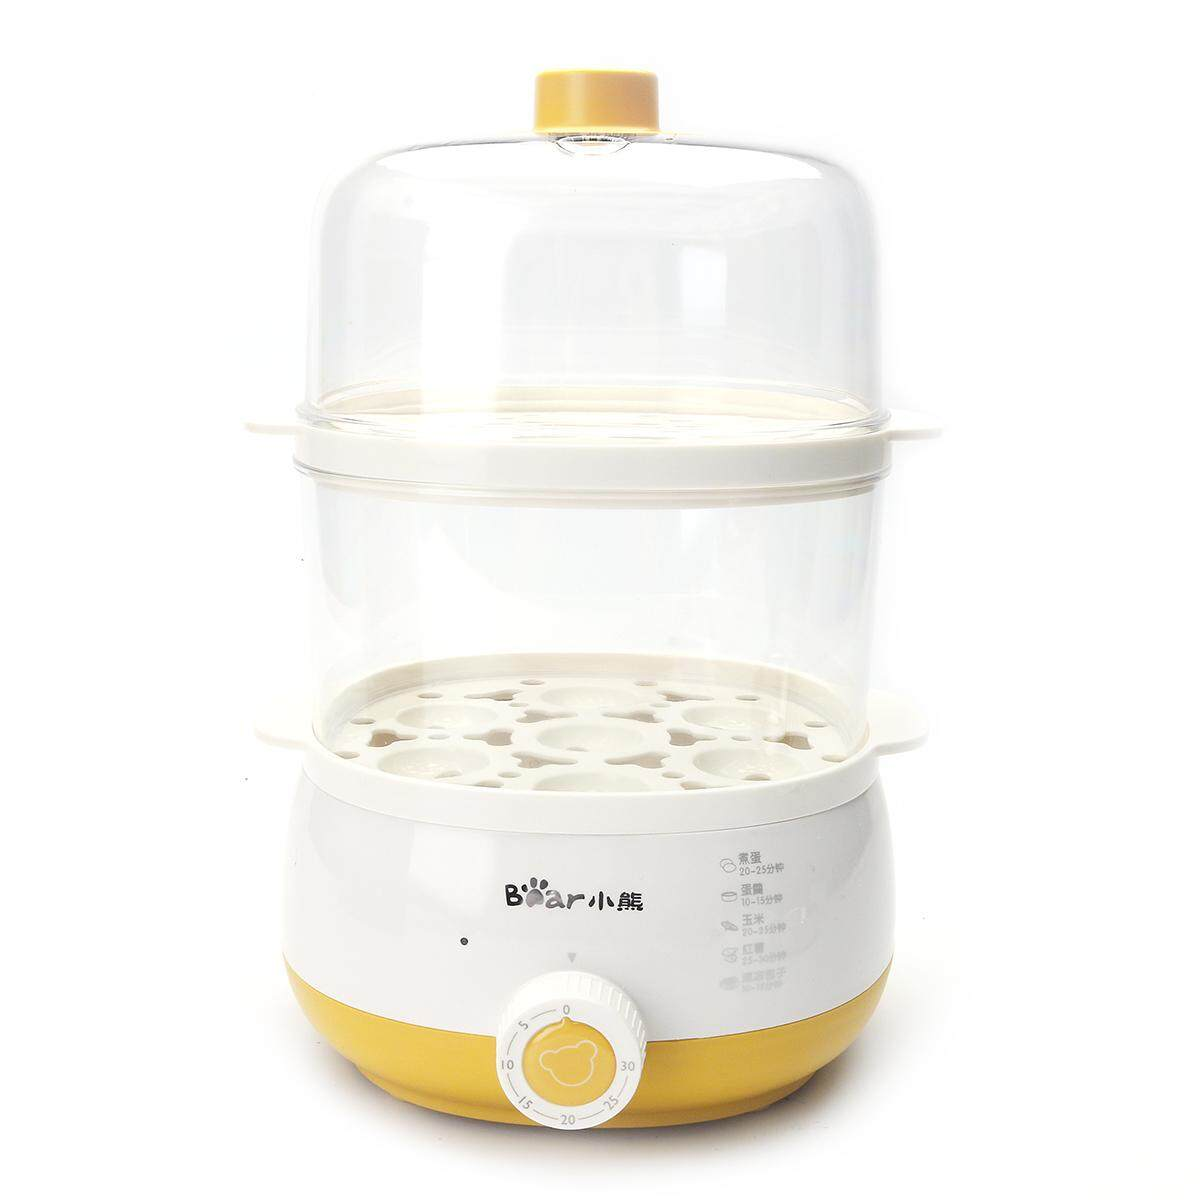 Multifunction Electric 14 Egg Boiler Poacher Steamer Timing Cooking Machine 220v By Glimmer.